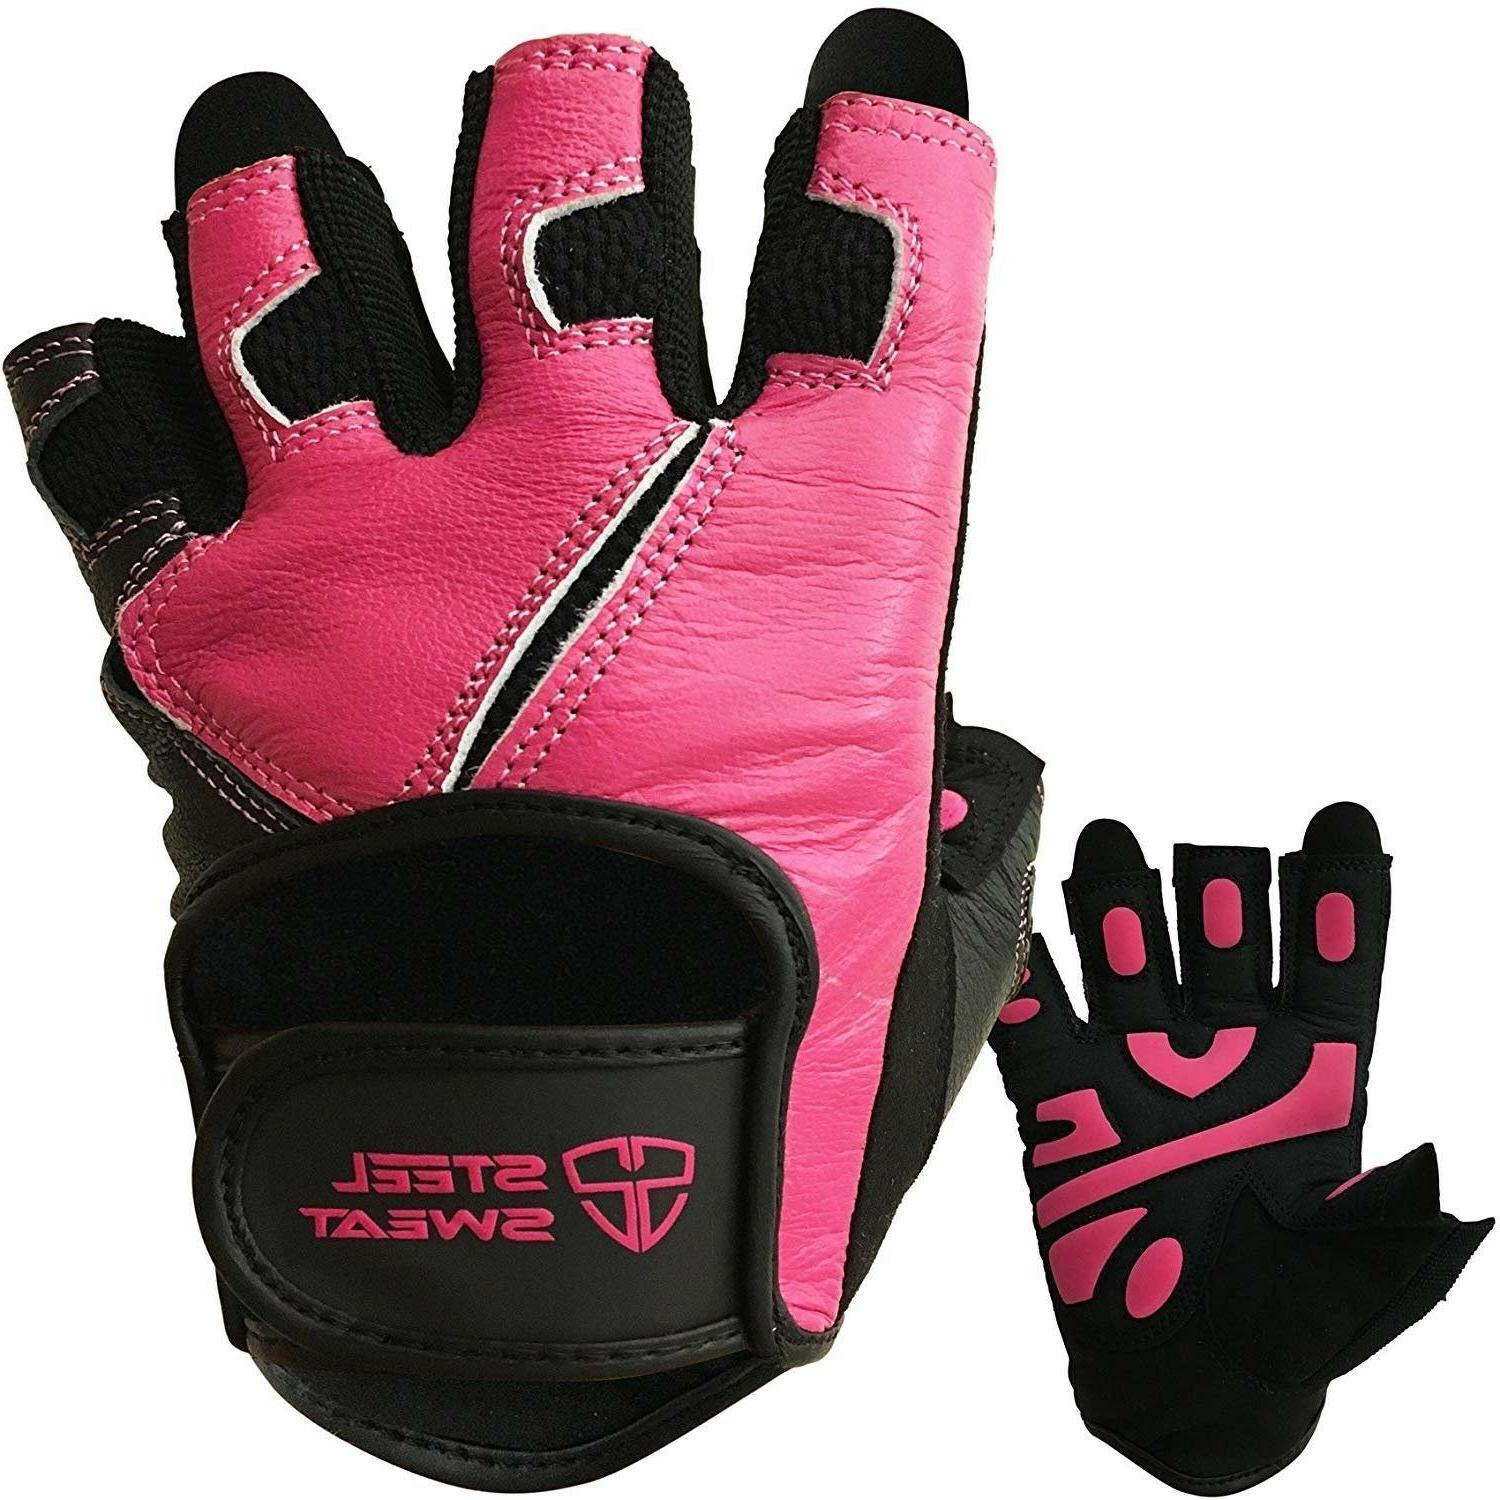 new scarr leather gloves weight lifting pink